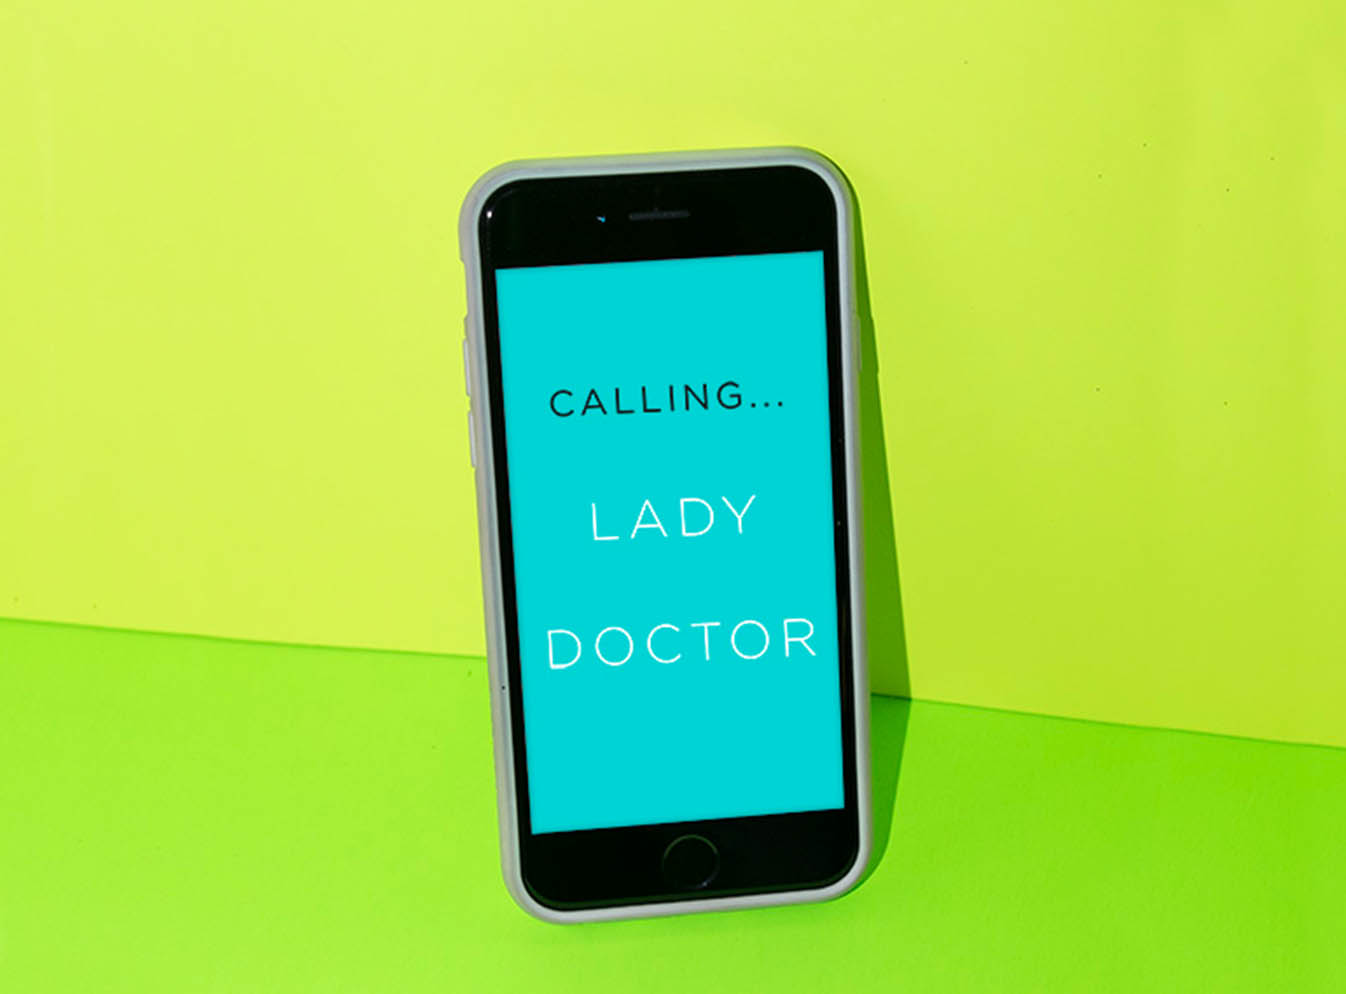 Mobile phone displaying Calling... Lady Doctor